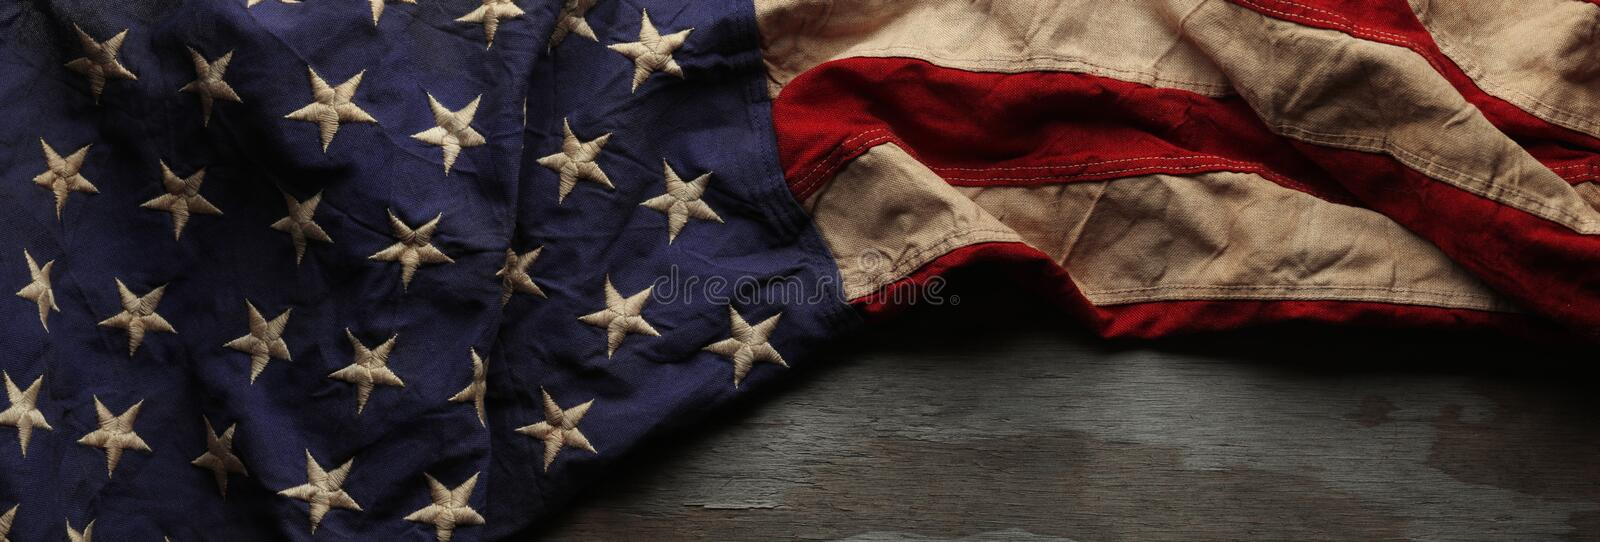 Vintage American flag for Memorial day or Veteran`s day background royalty free stock image